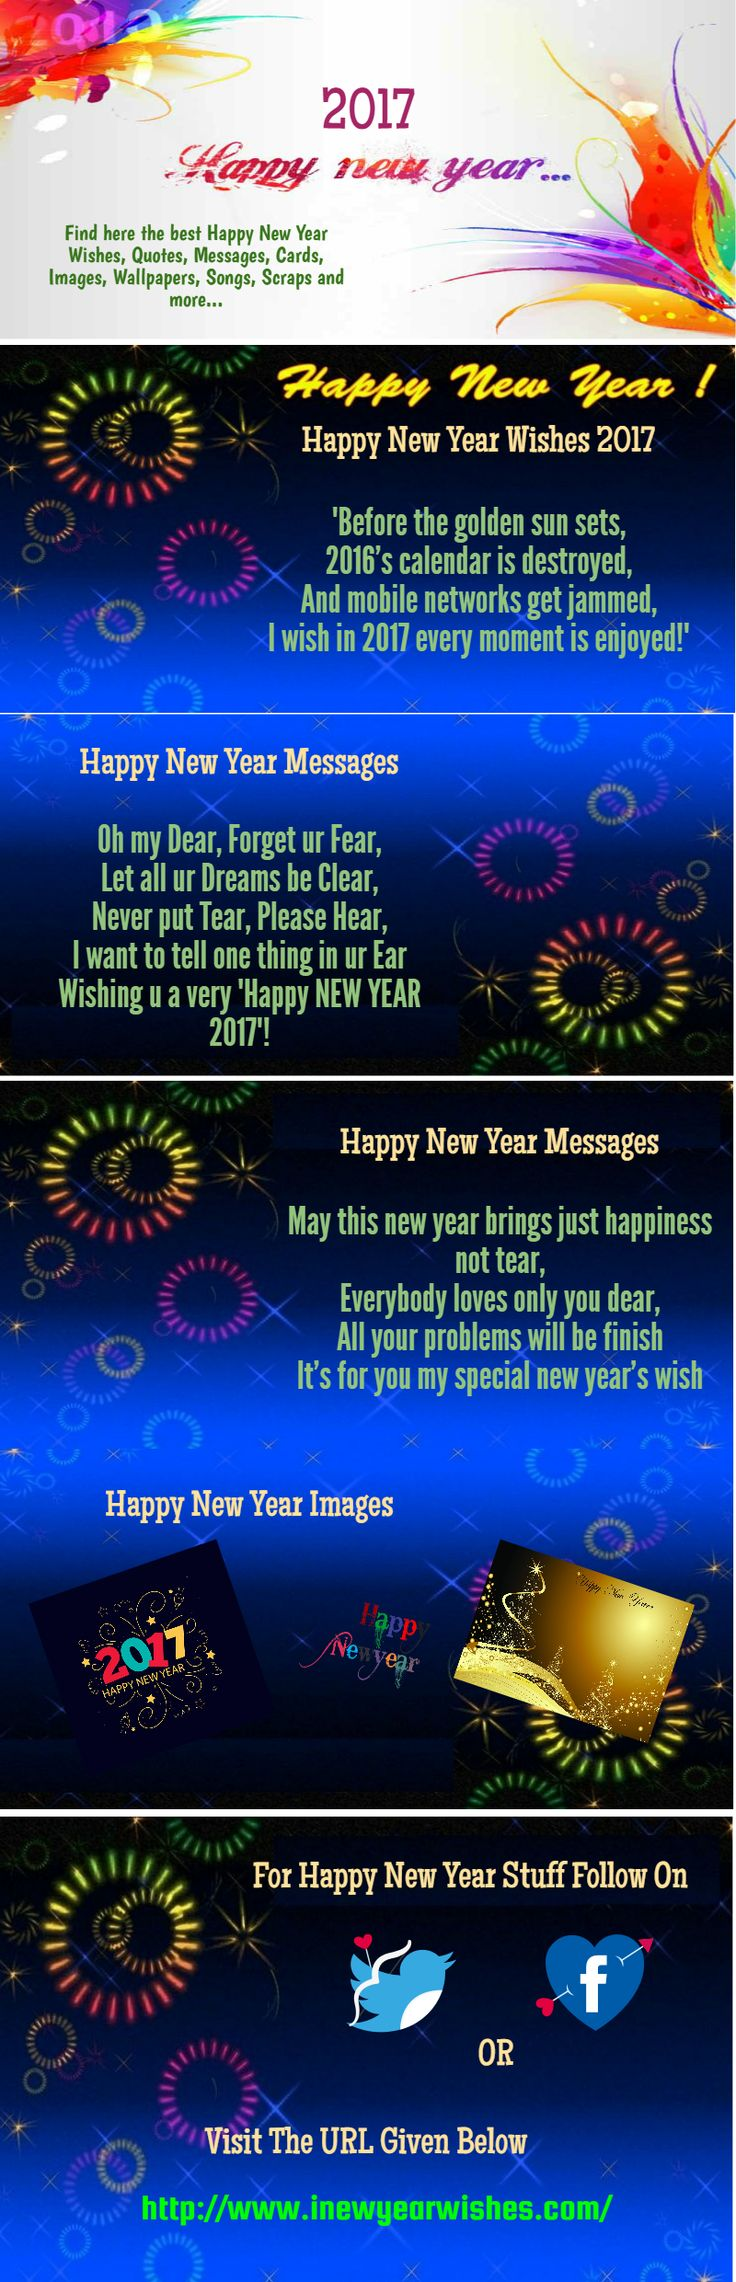 wedding anniversary wishes shayari in hindi%0A Get the latest collection of New Year      Wishes with Images for friends   Lovers  Family to Wish Happy New Year      in Hindi  u     English